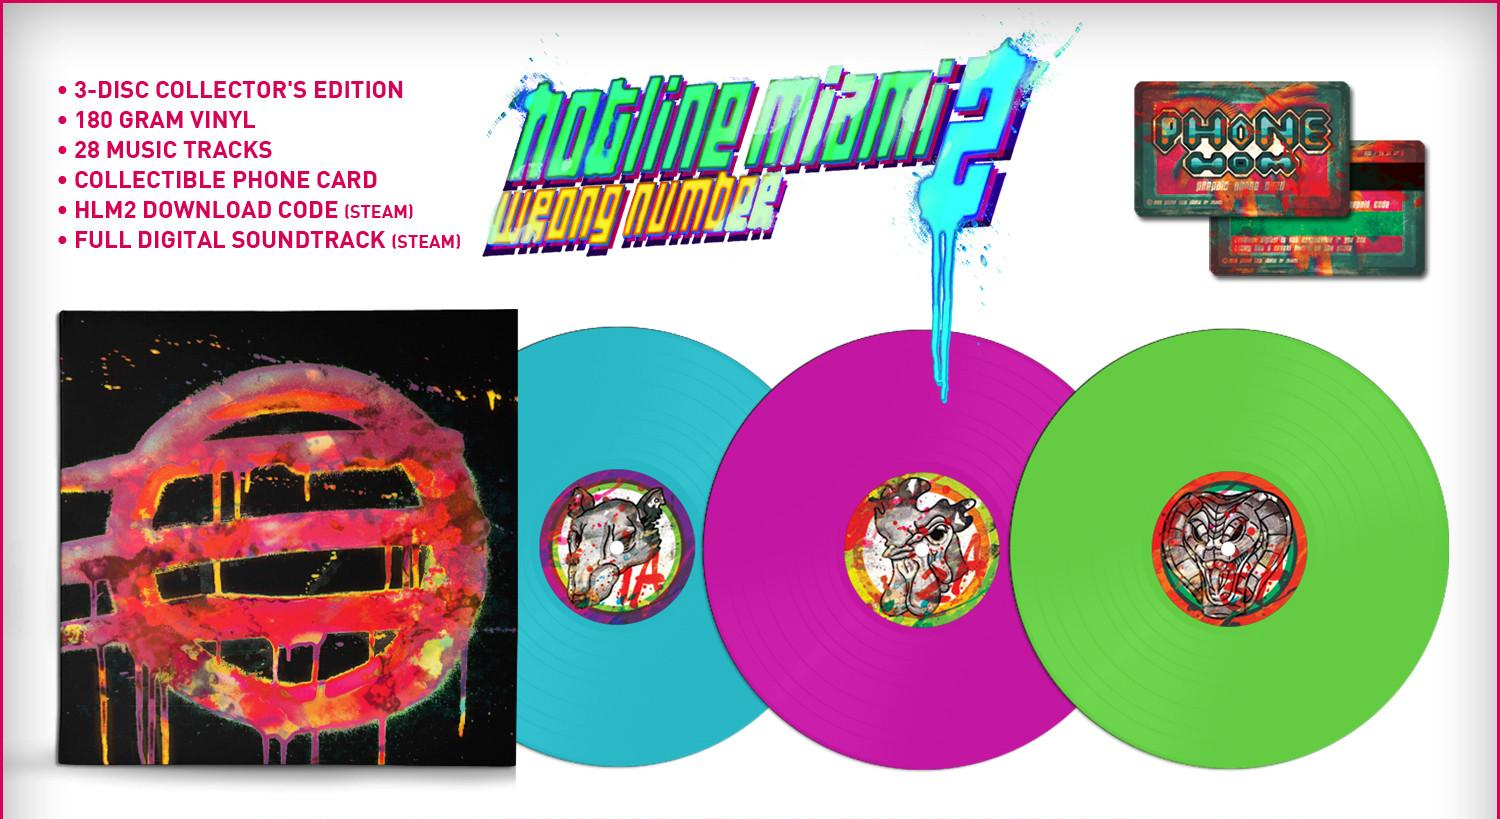 Hotline Miami 2 Wrong Number Collectors Edition Features